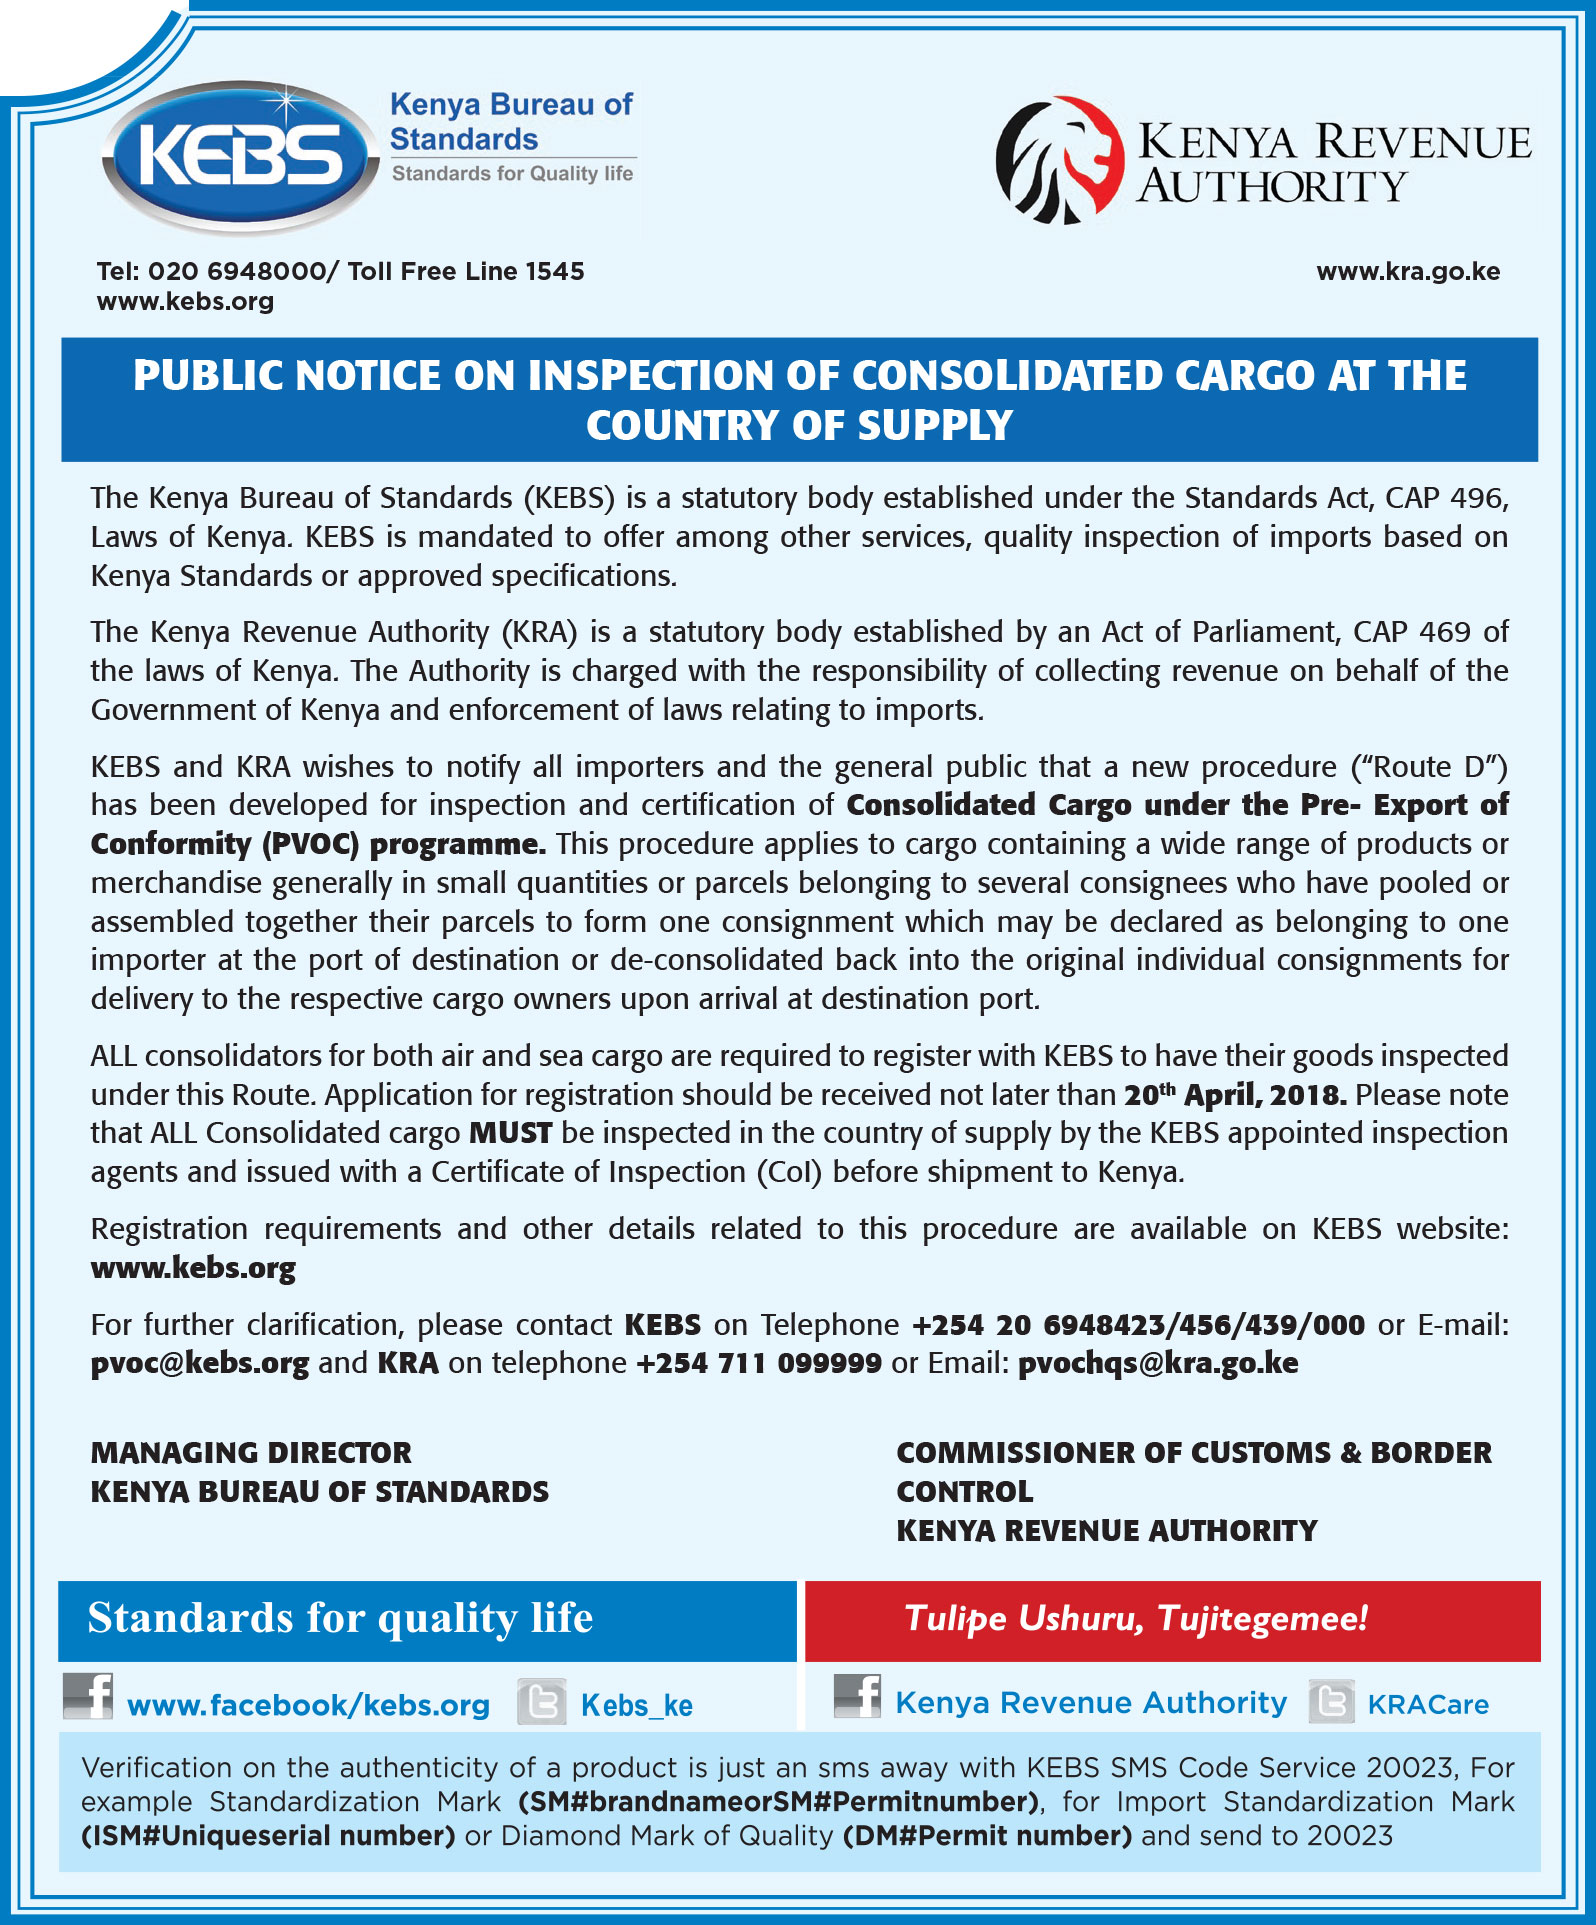 PUBLIC NOTICE ON INSPECTION OF CONSOLIDATED